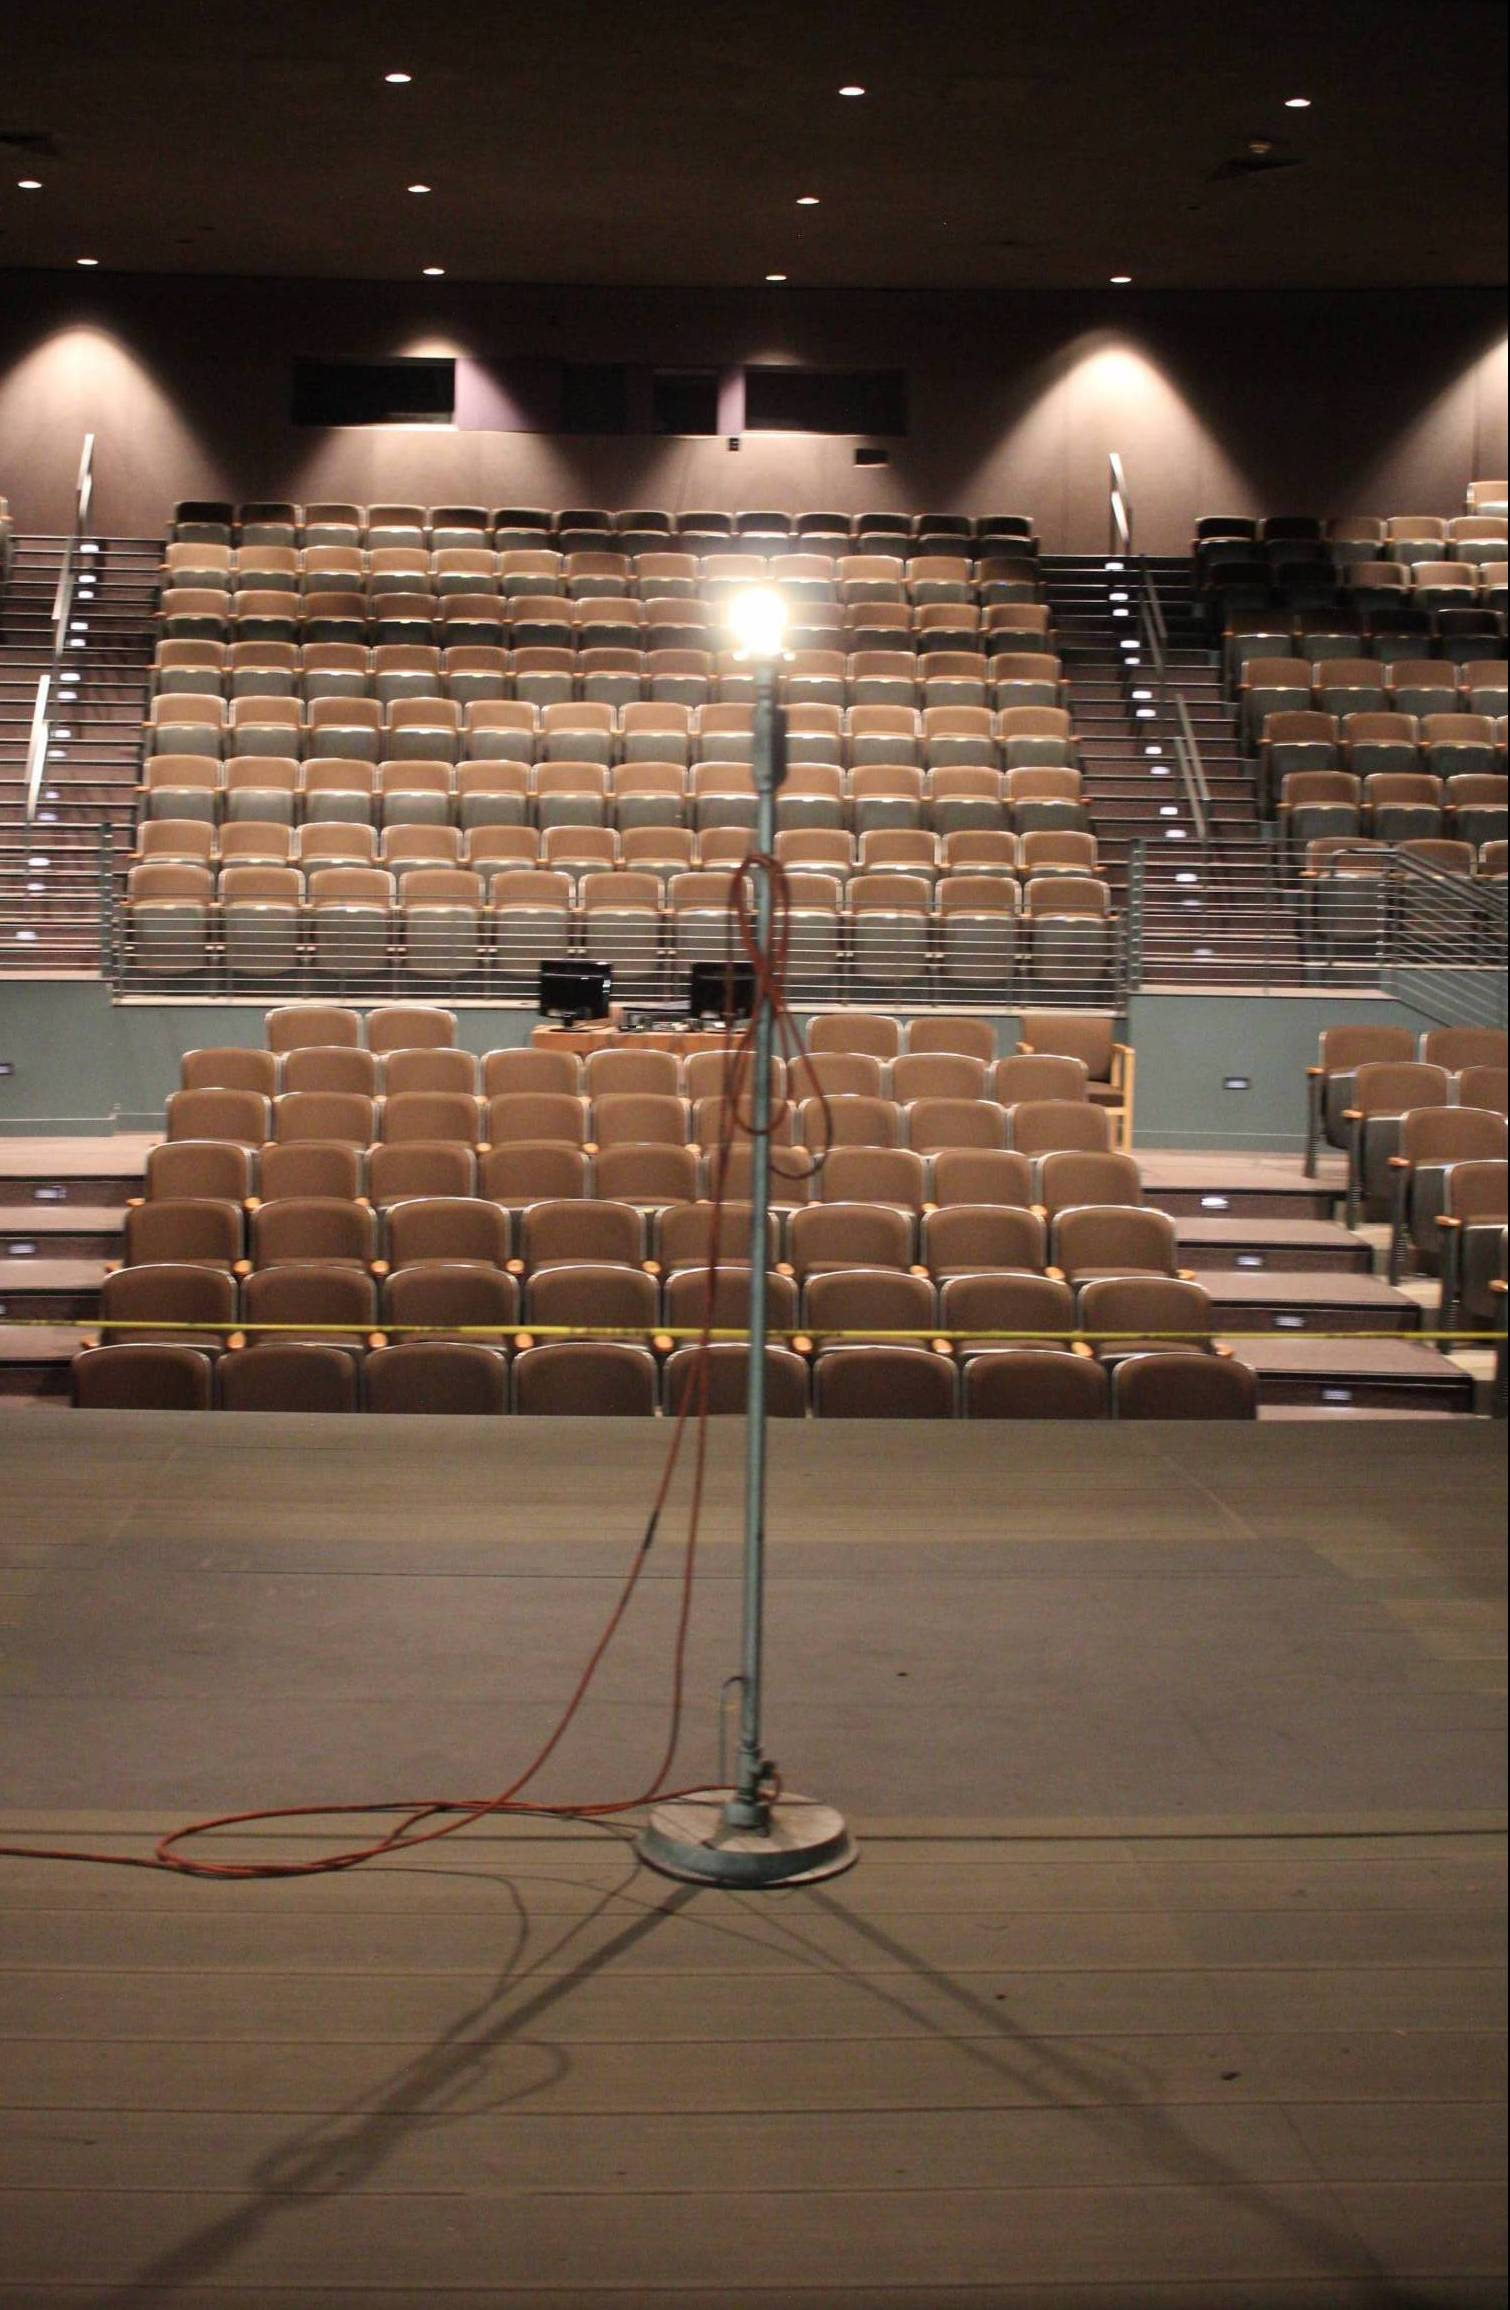 Light pole on stage in the middle of an empty theatre